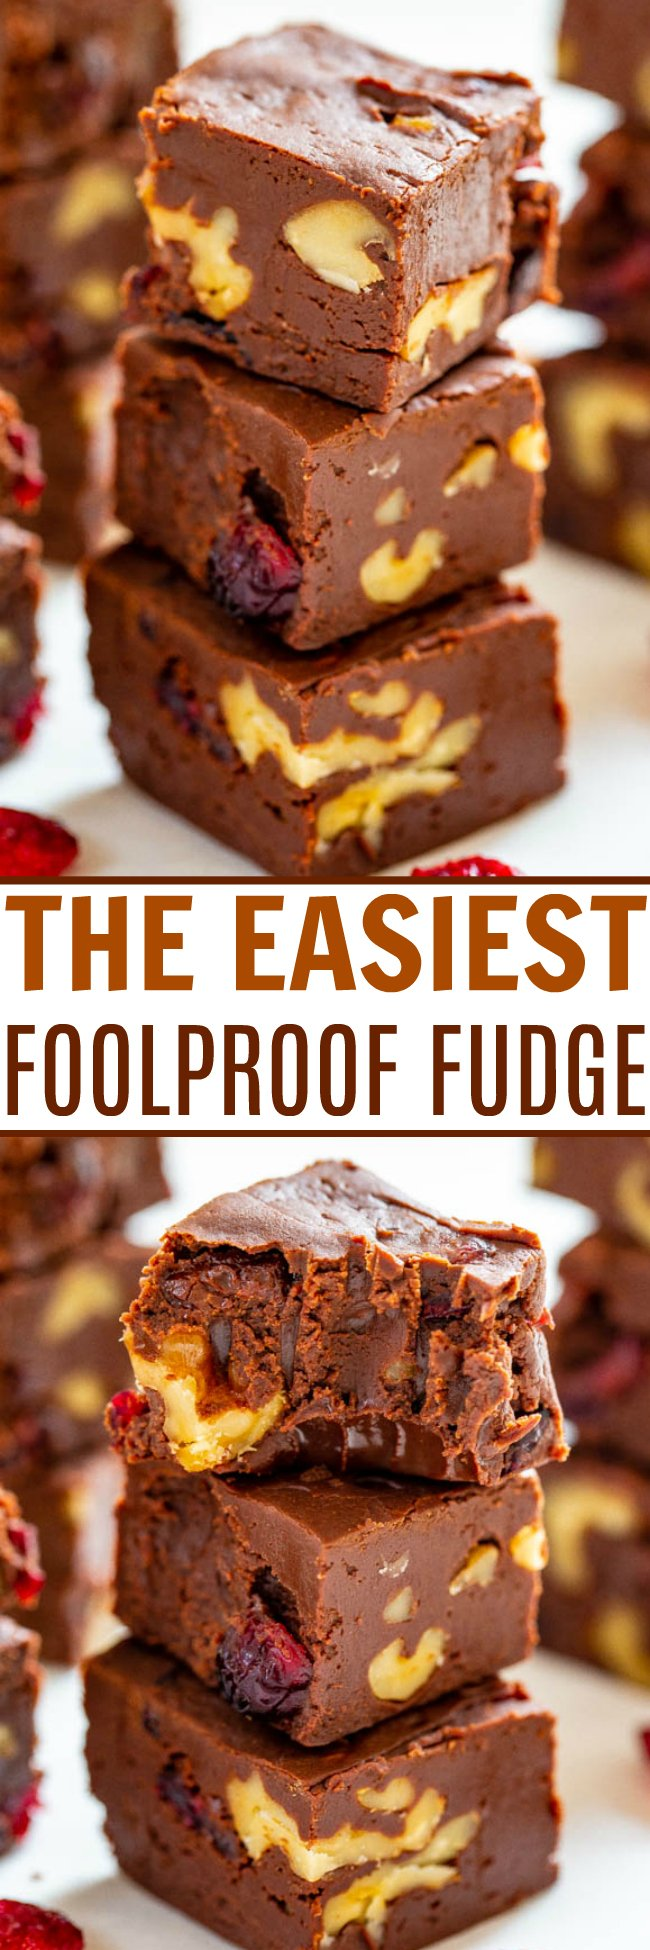 The Easiest Foolproof Fudge – Look no further than this recipe for the EASIEST and most FOOLPROOF fudge that takes less than 3 minutes to make!! Customize it with your favorite add-ins like cranberries and walnuts! Great for gifts and cookie exchanges!!